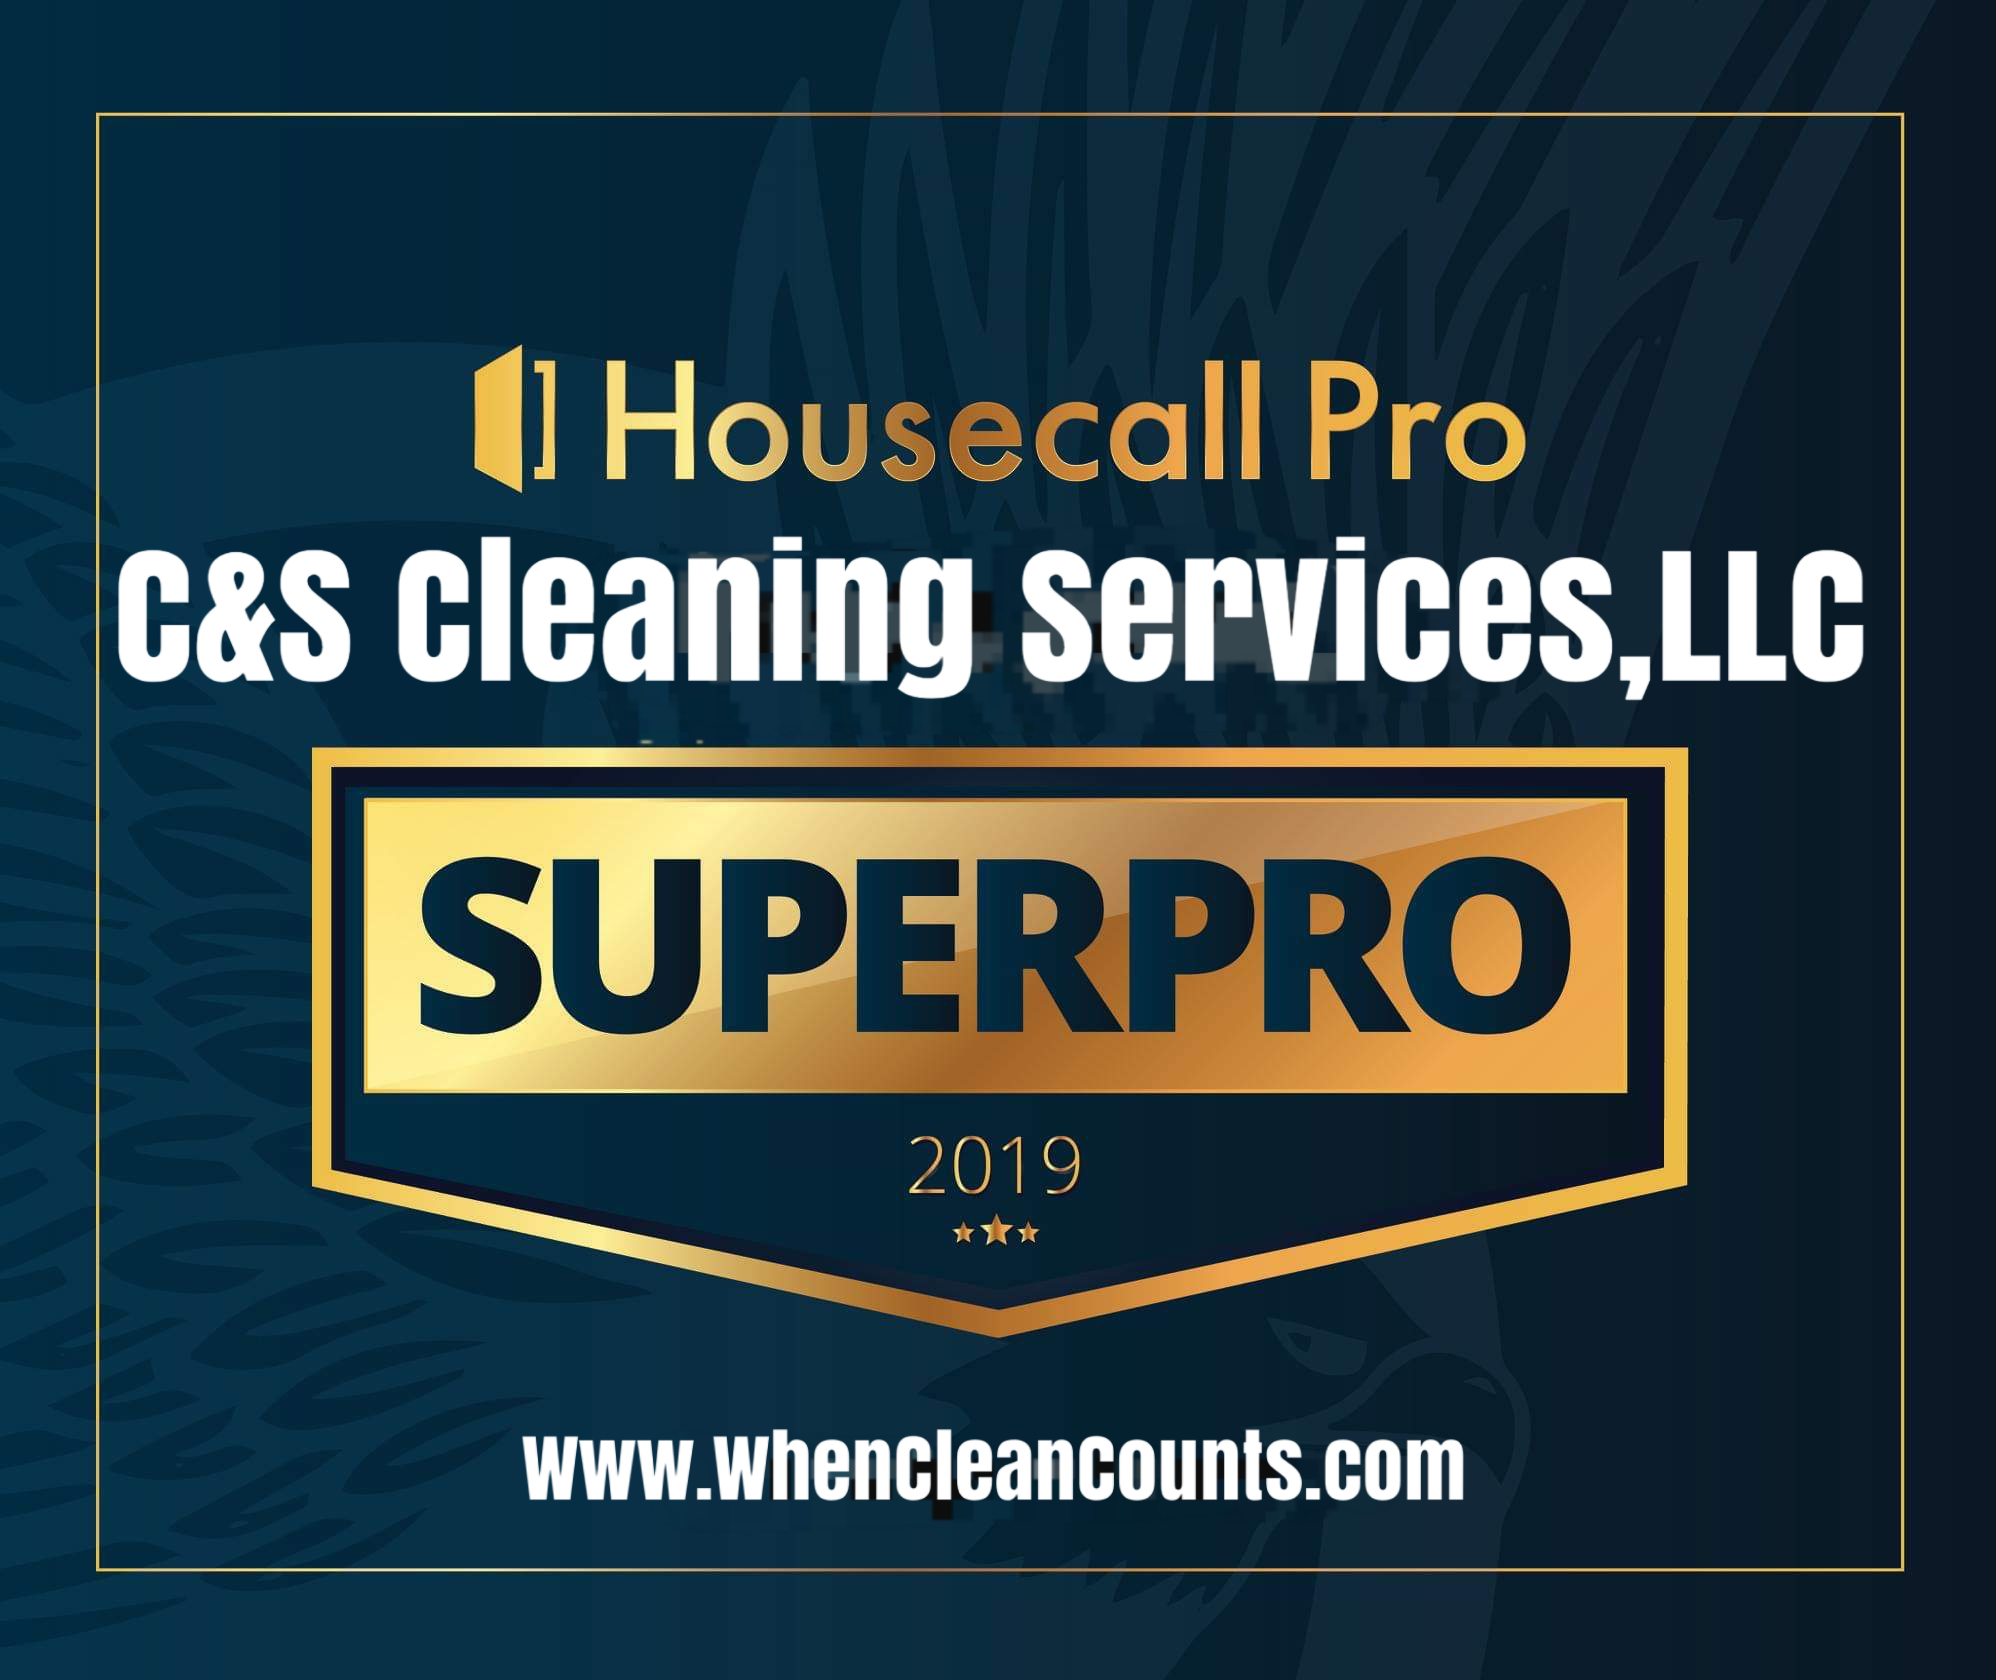 2019 HouseCall Pro Superpro Award